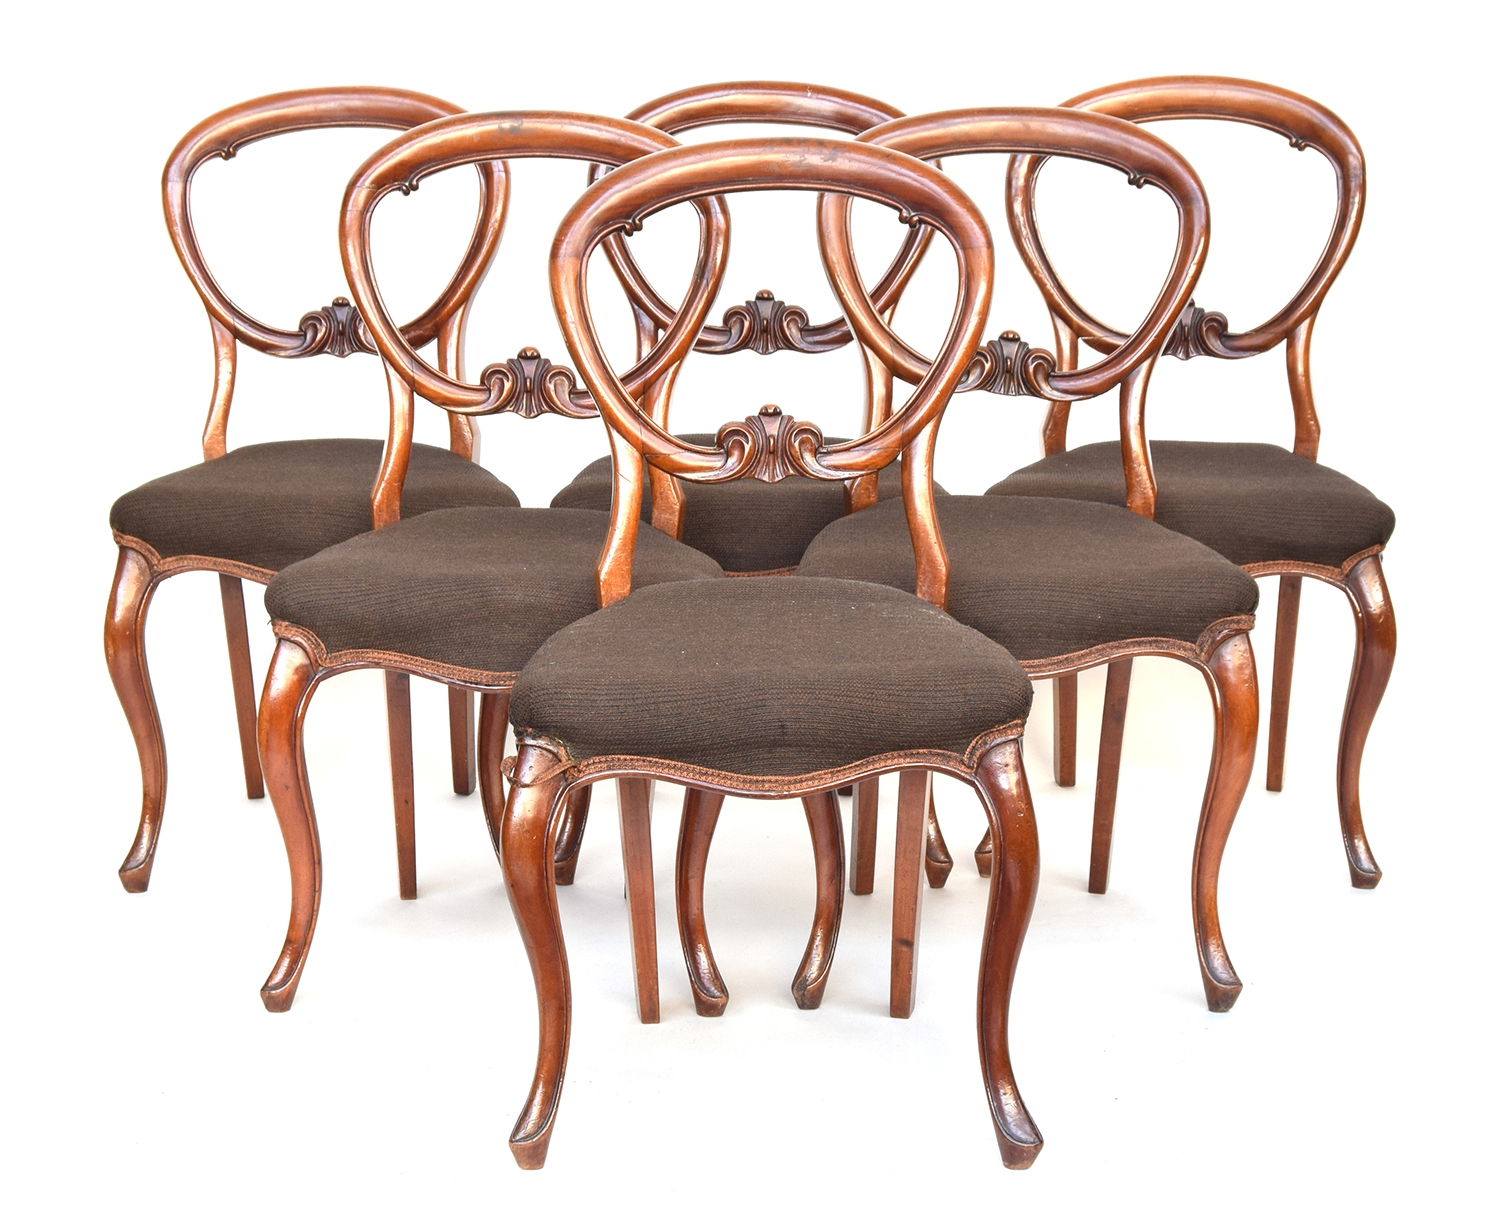 A set of six Continental recently re-upholstered 19th century balloon back dining chairs